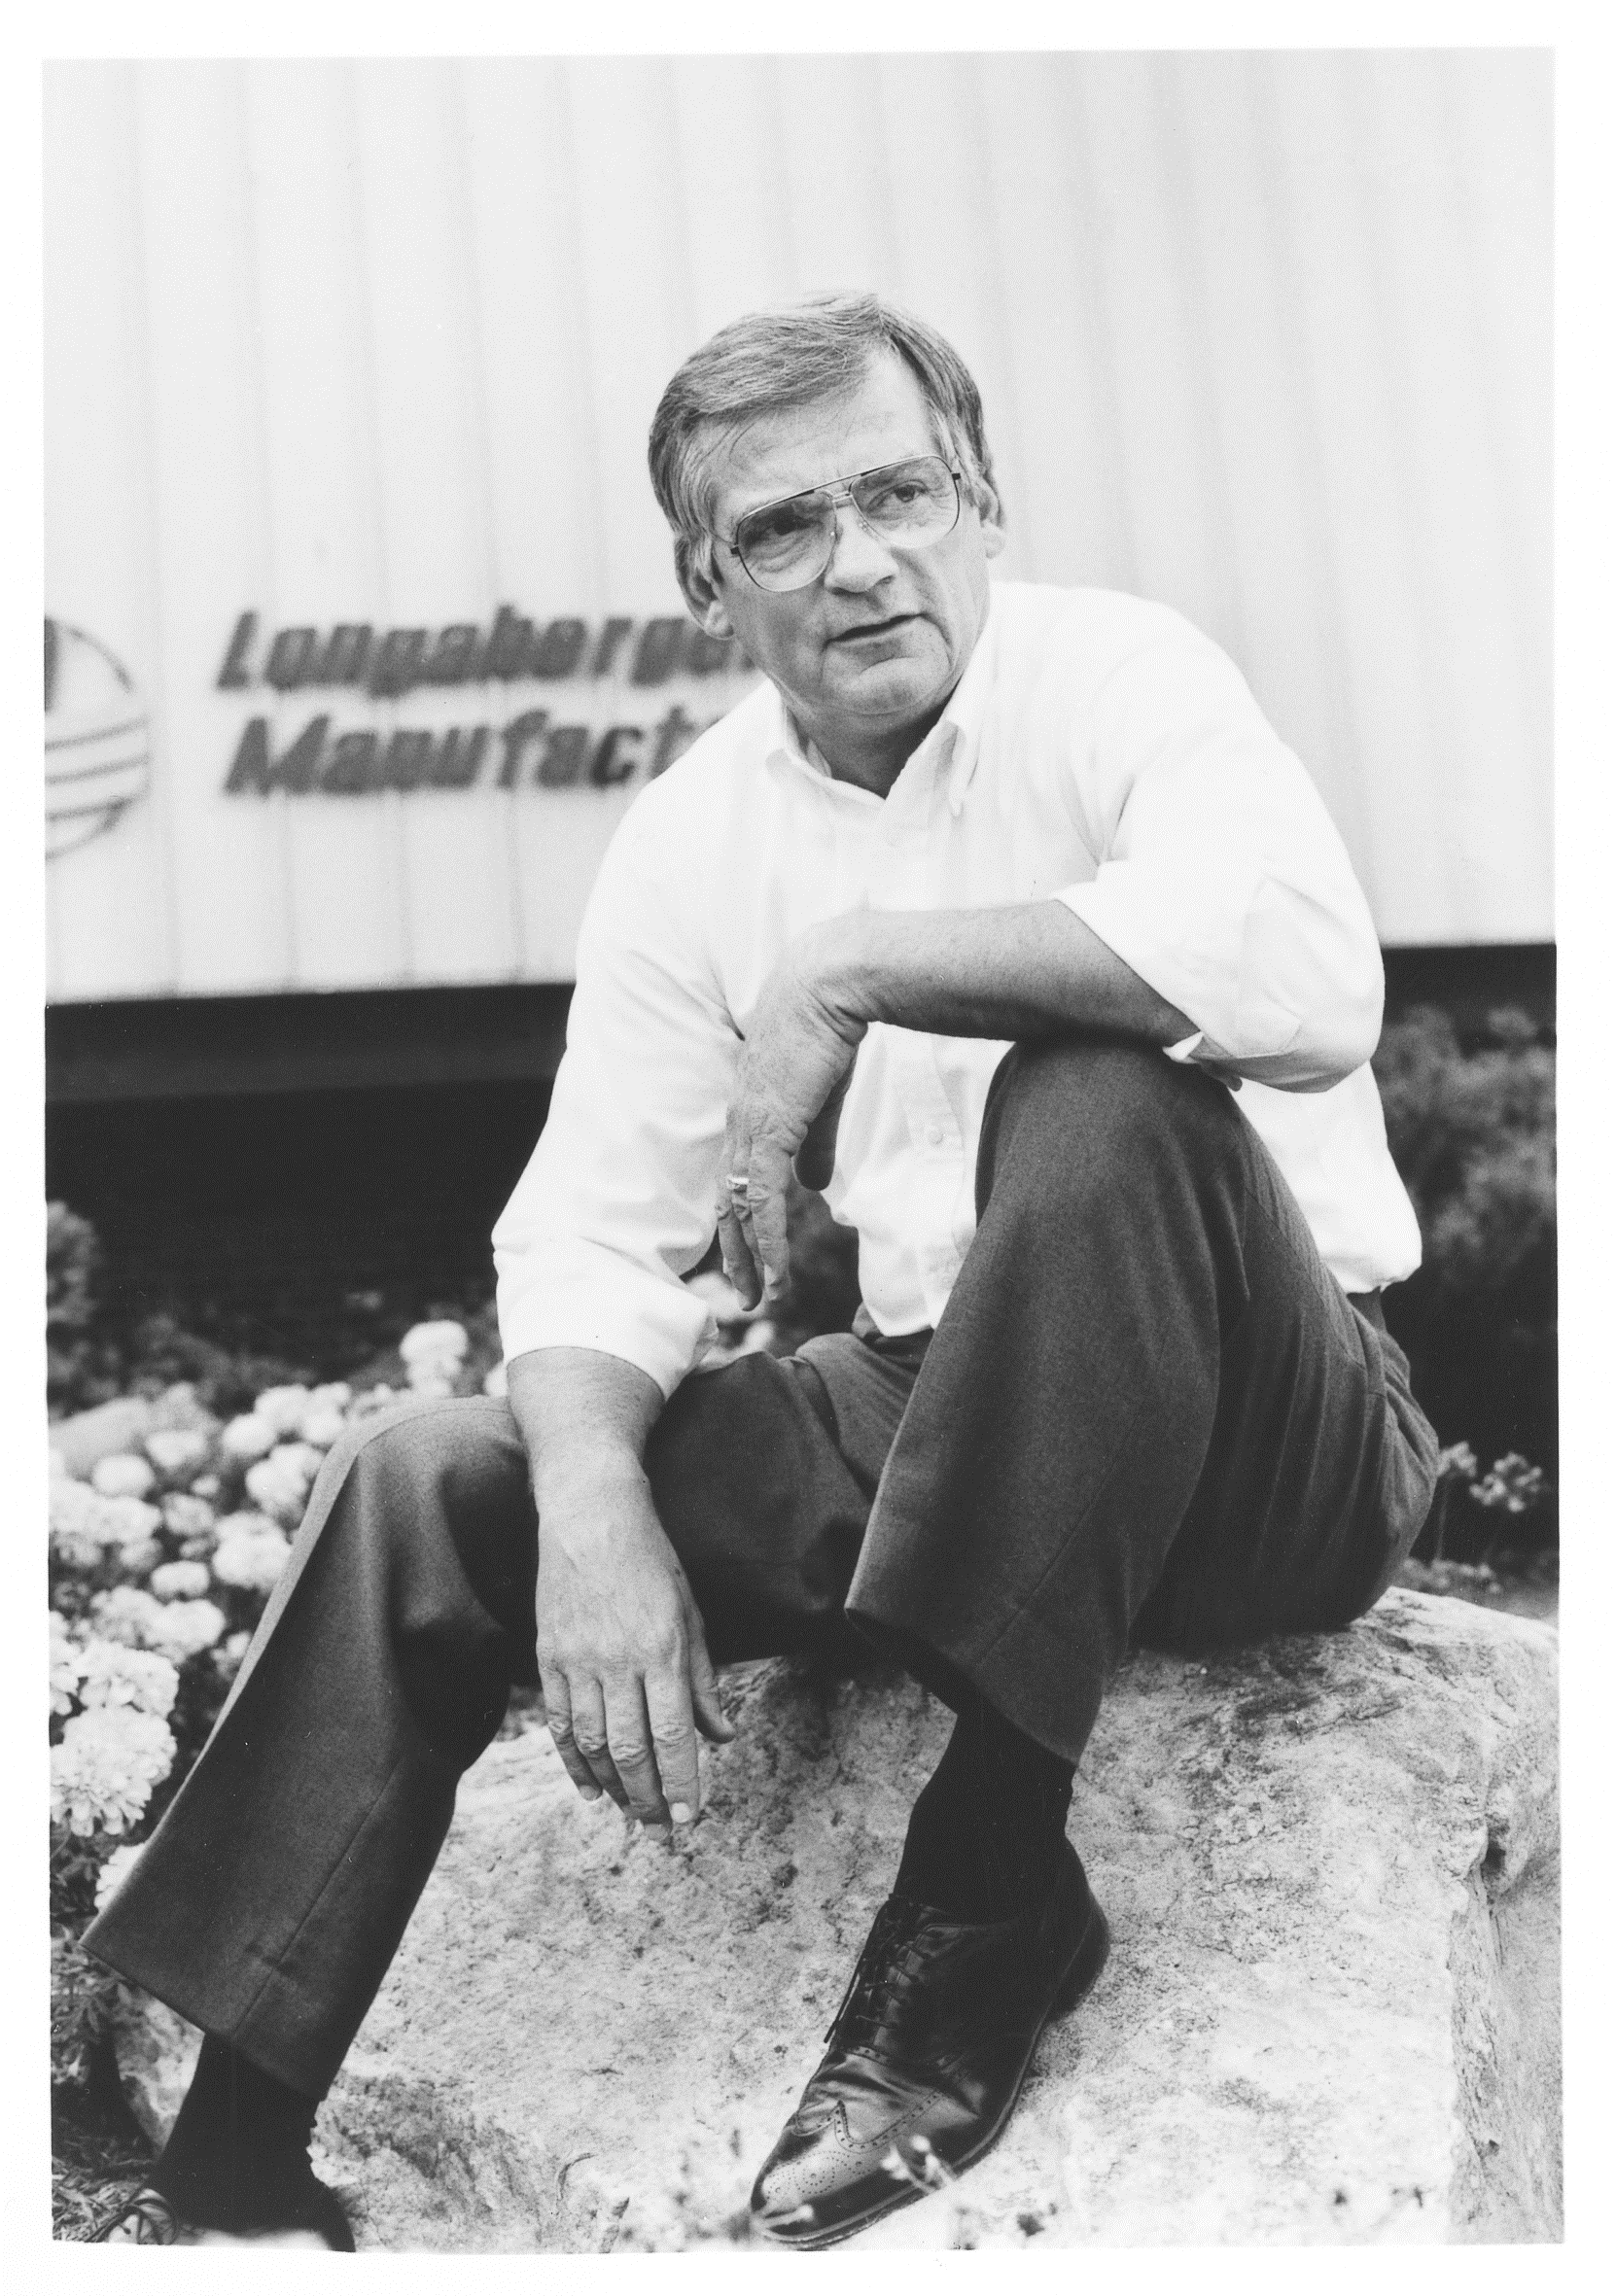 Dave Longaberger encouraged others to keep a lighthearted attitude ...